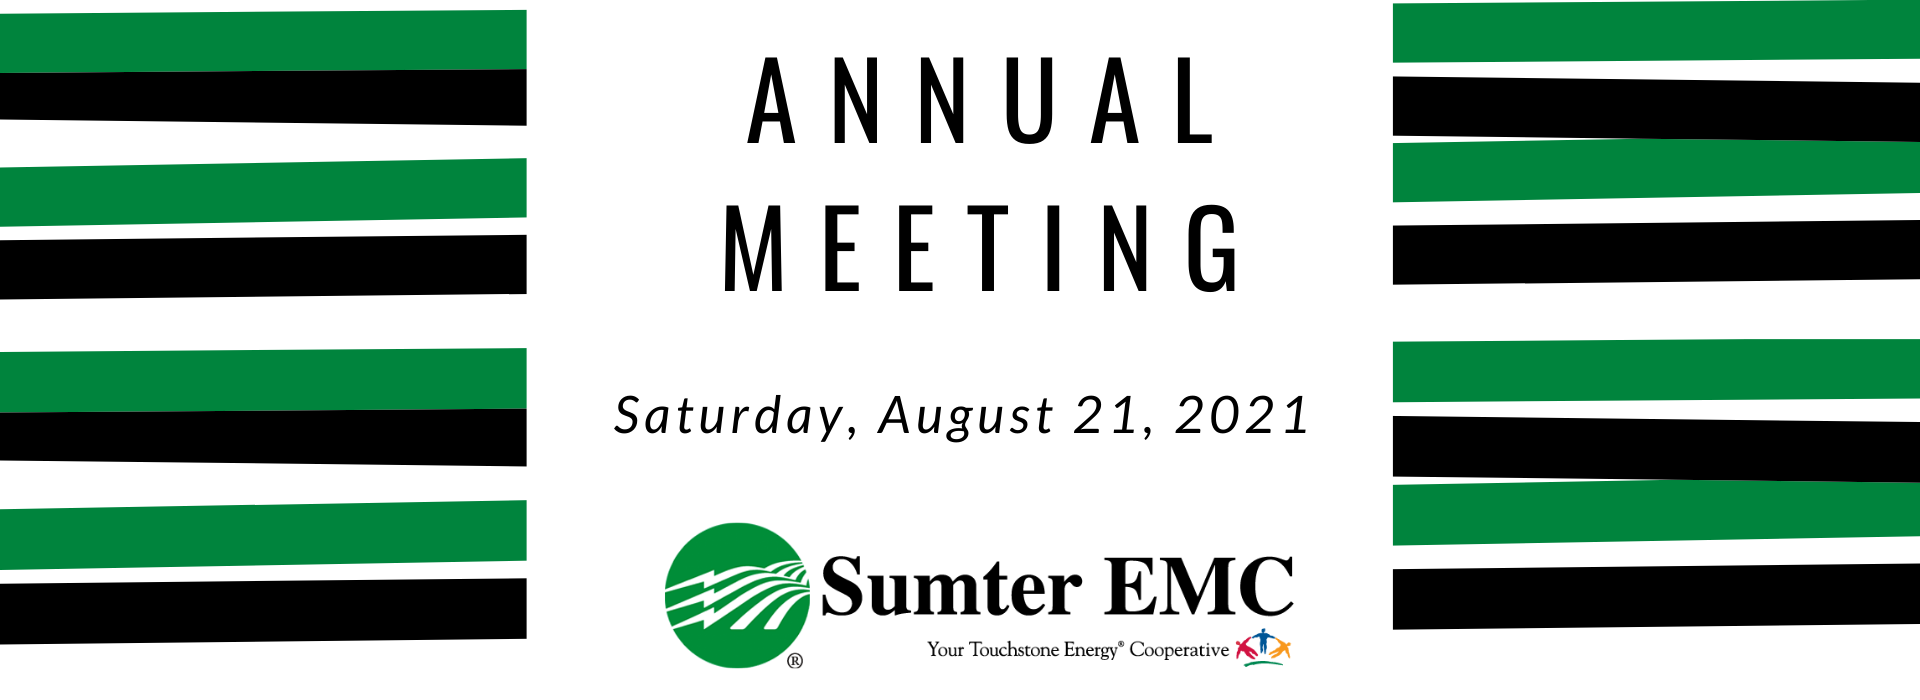 Annual Meeting and Other News